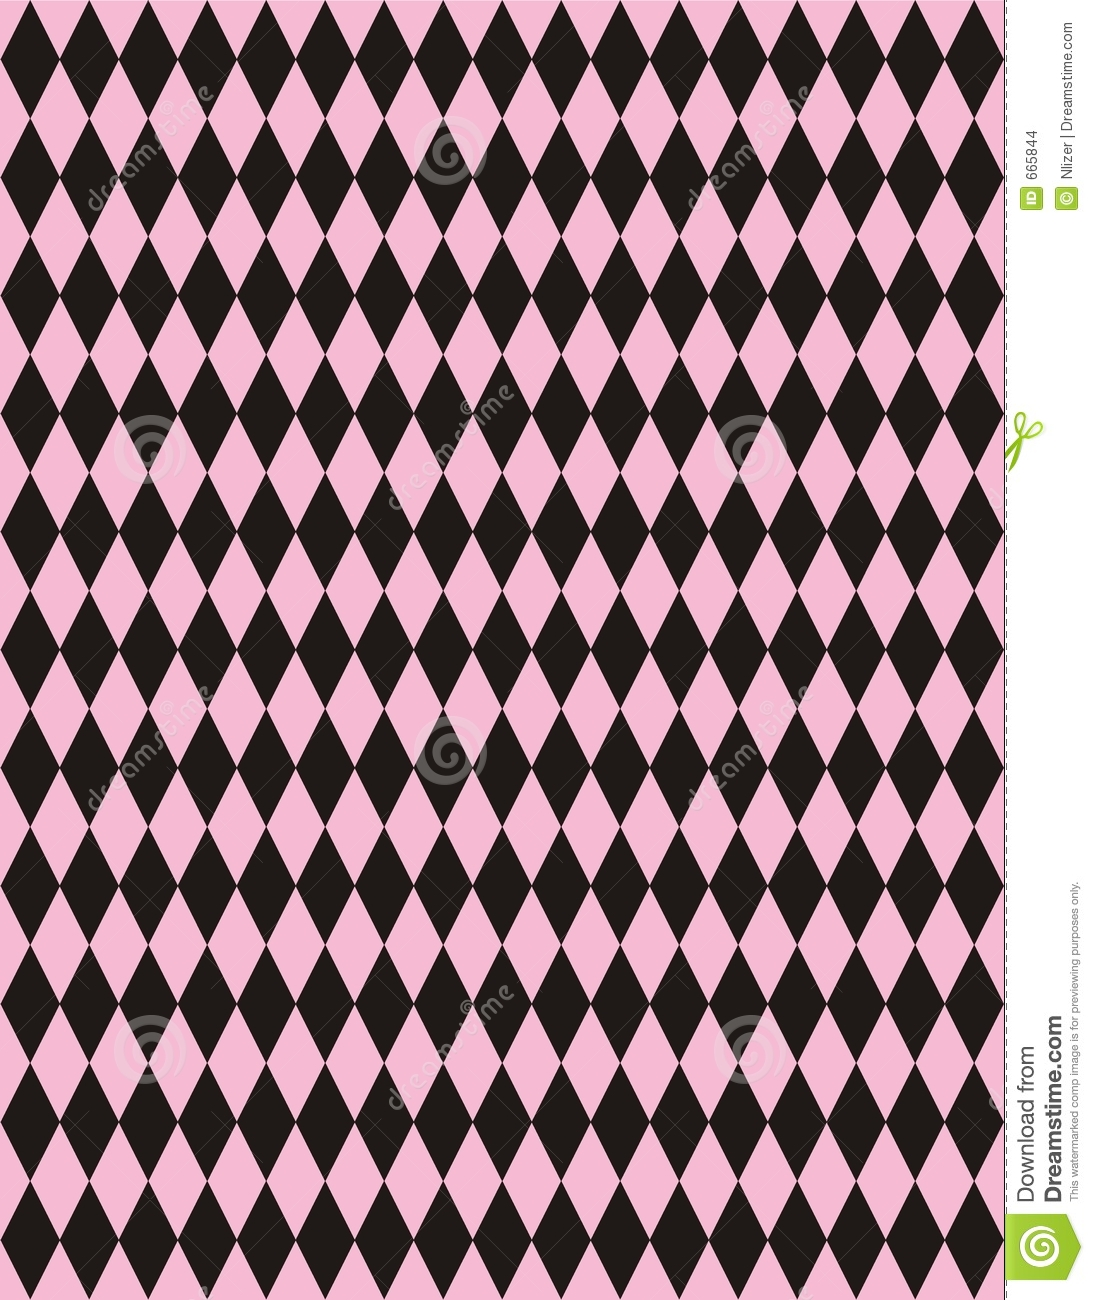 Look - Diamonds Pink black background pictures video